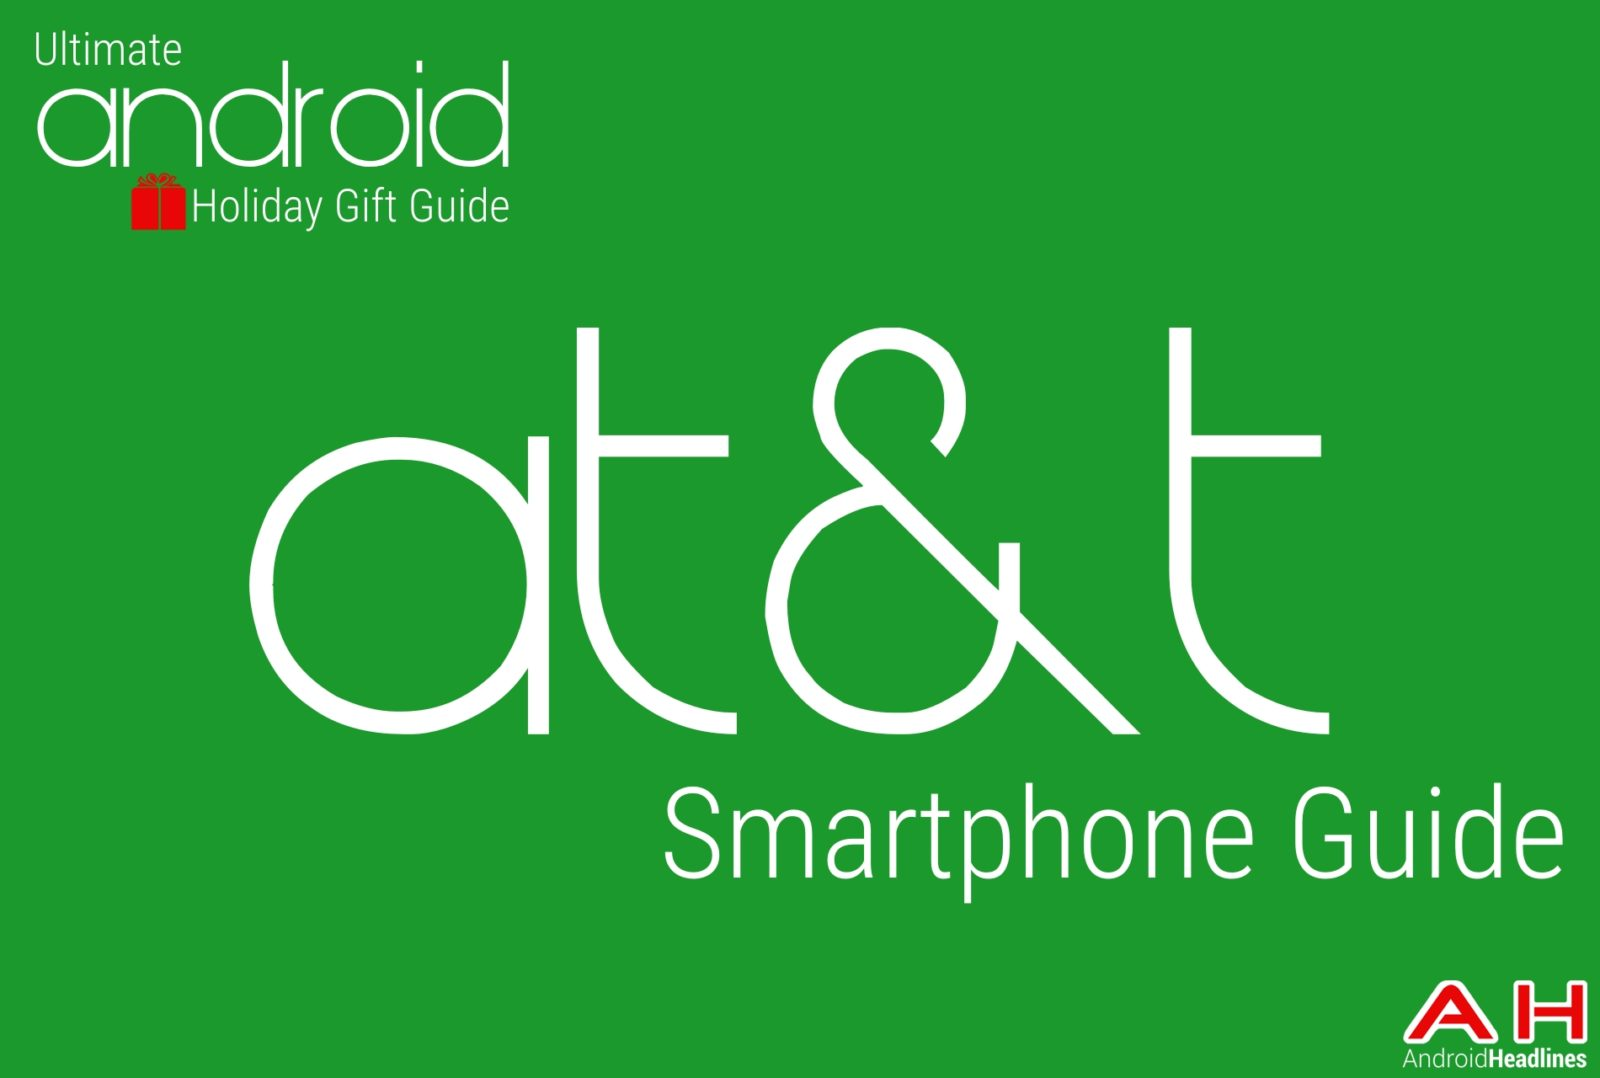 Android at&t Smartphones Guide - Holiday Gift Guide Main Image